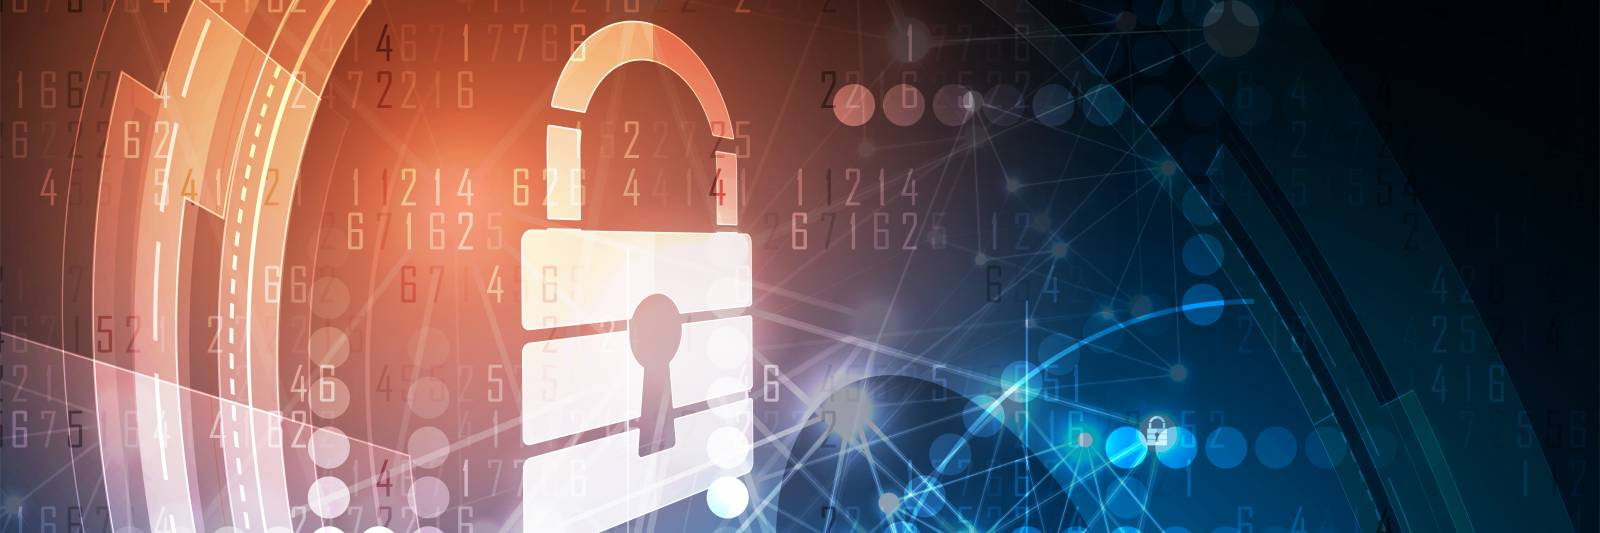 meeting the data security challenge with intel sgx